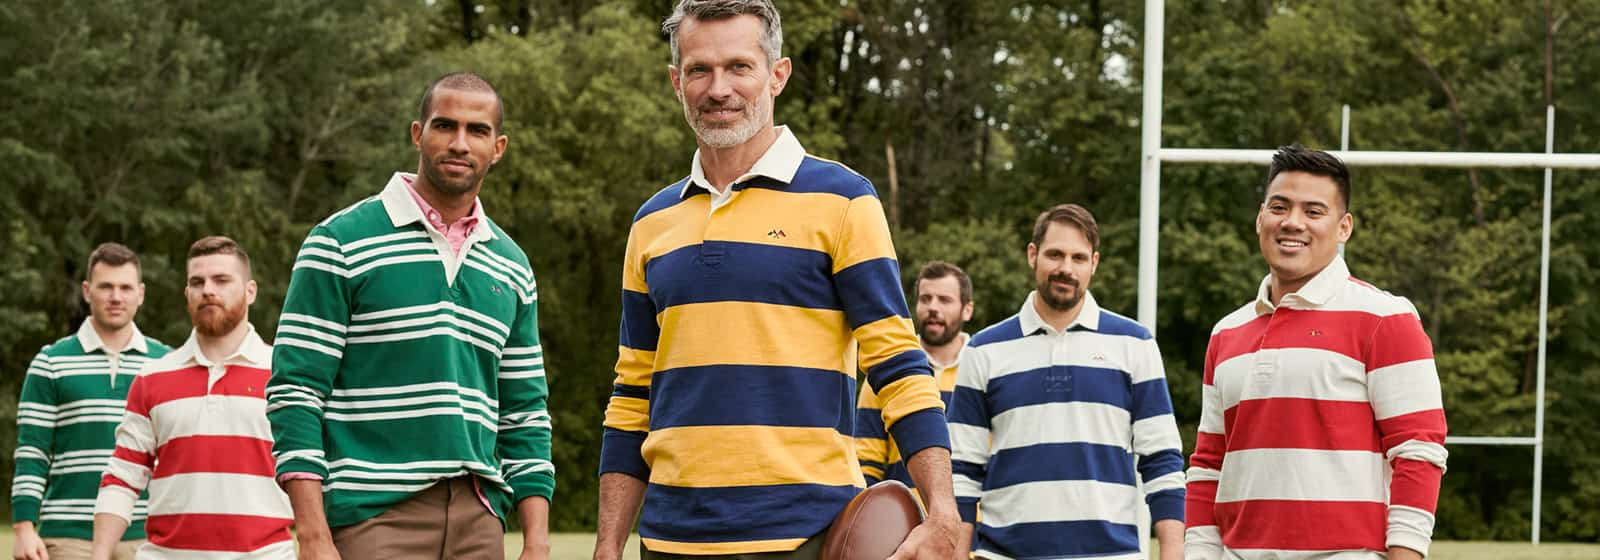 10 Fall Must Haves for Men in Their 40s